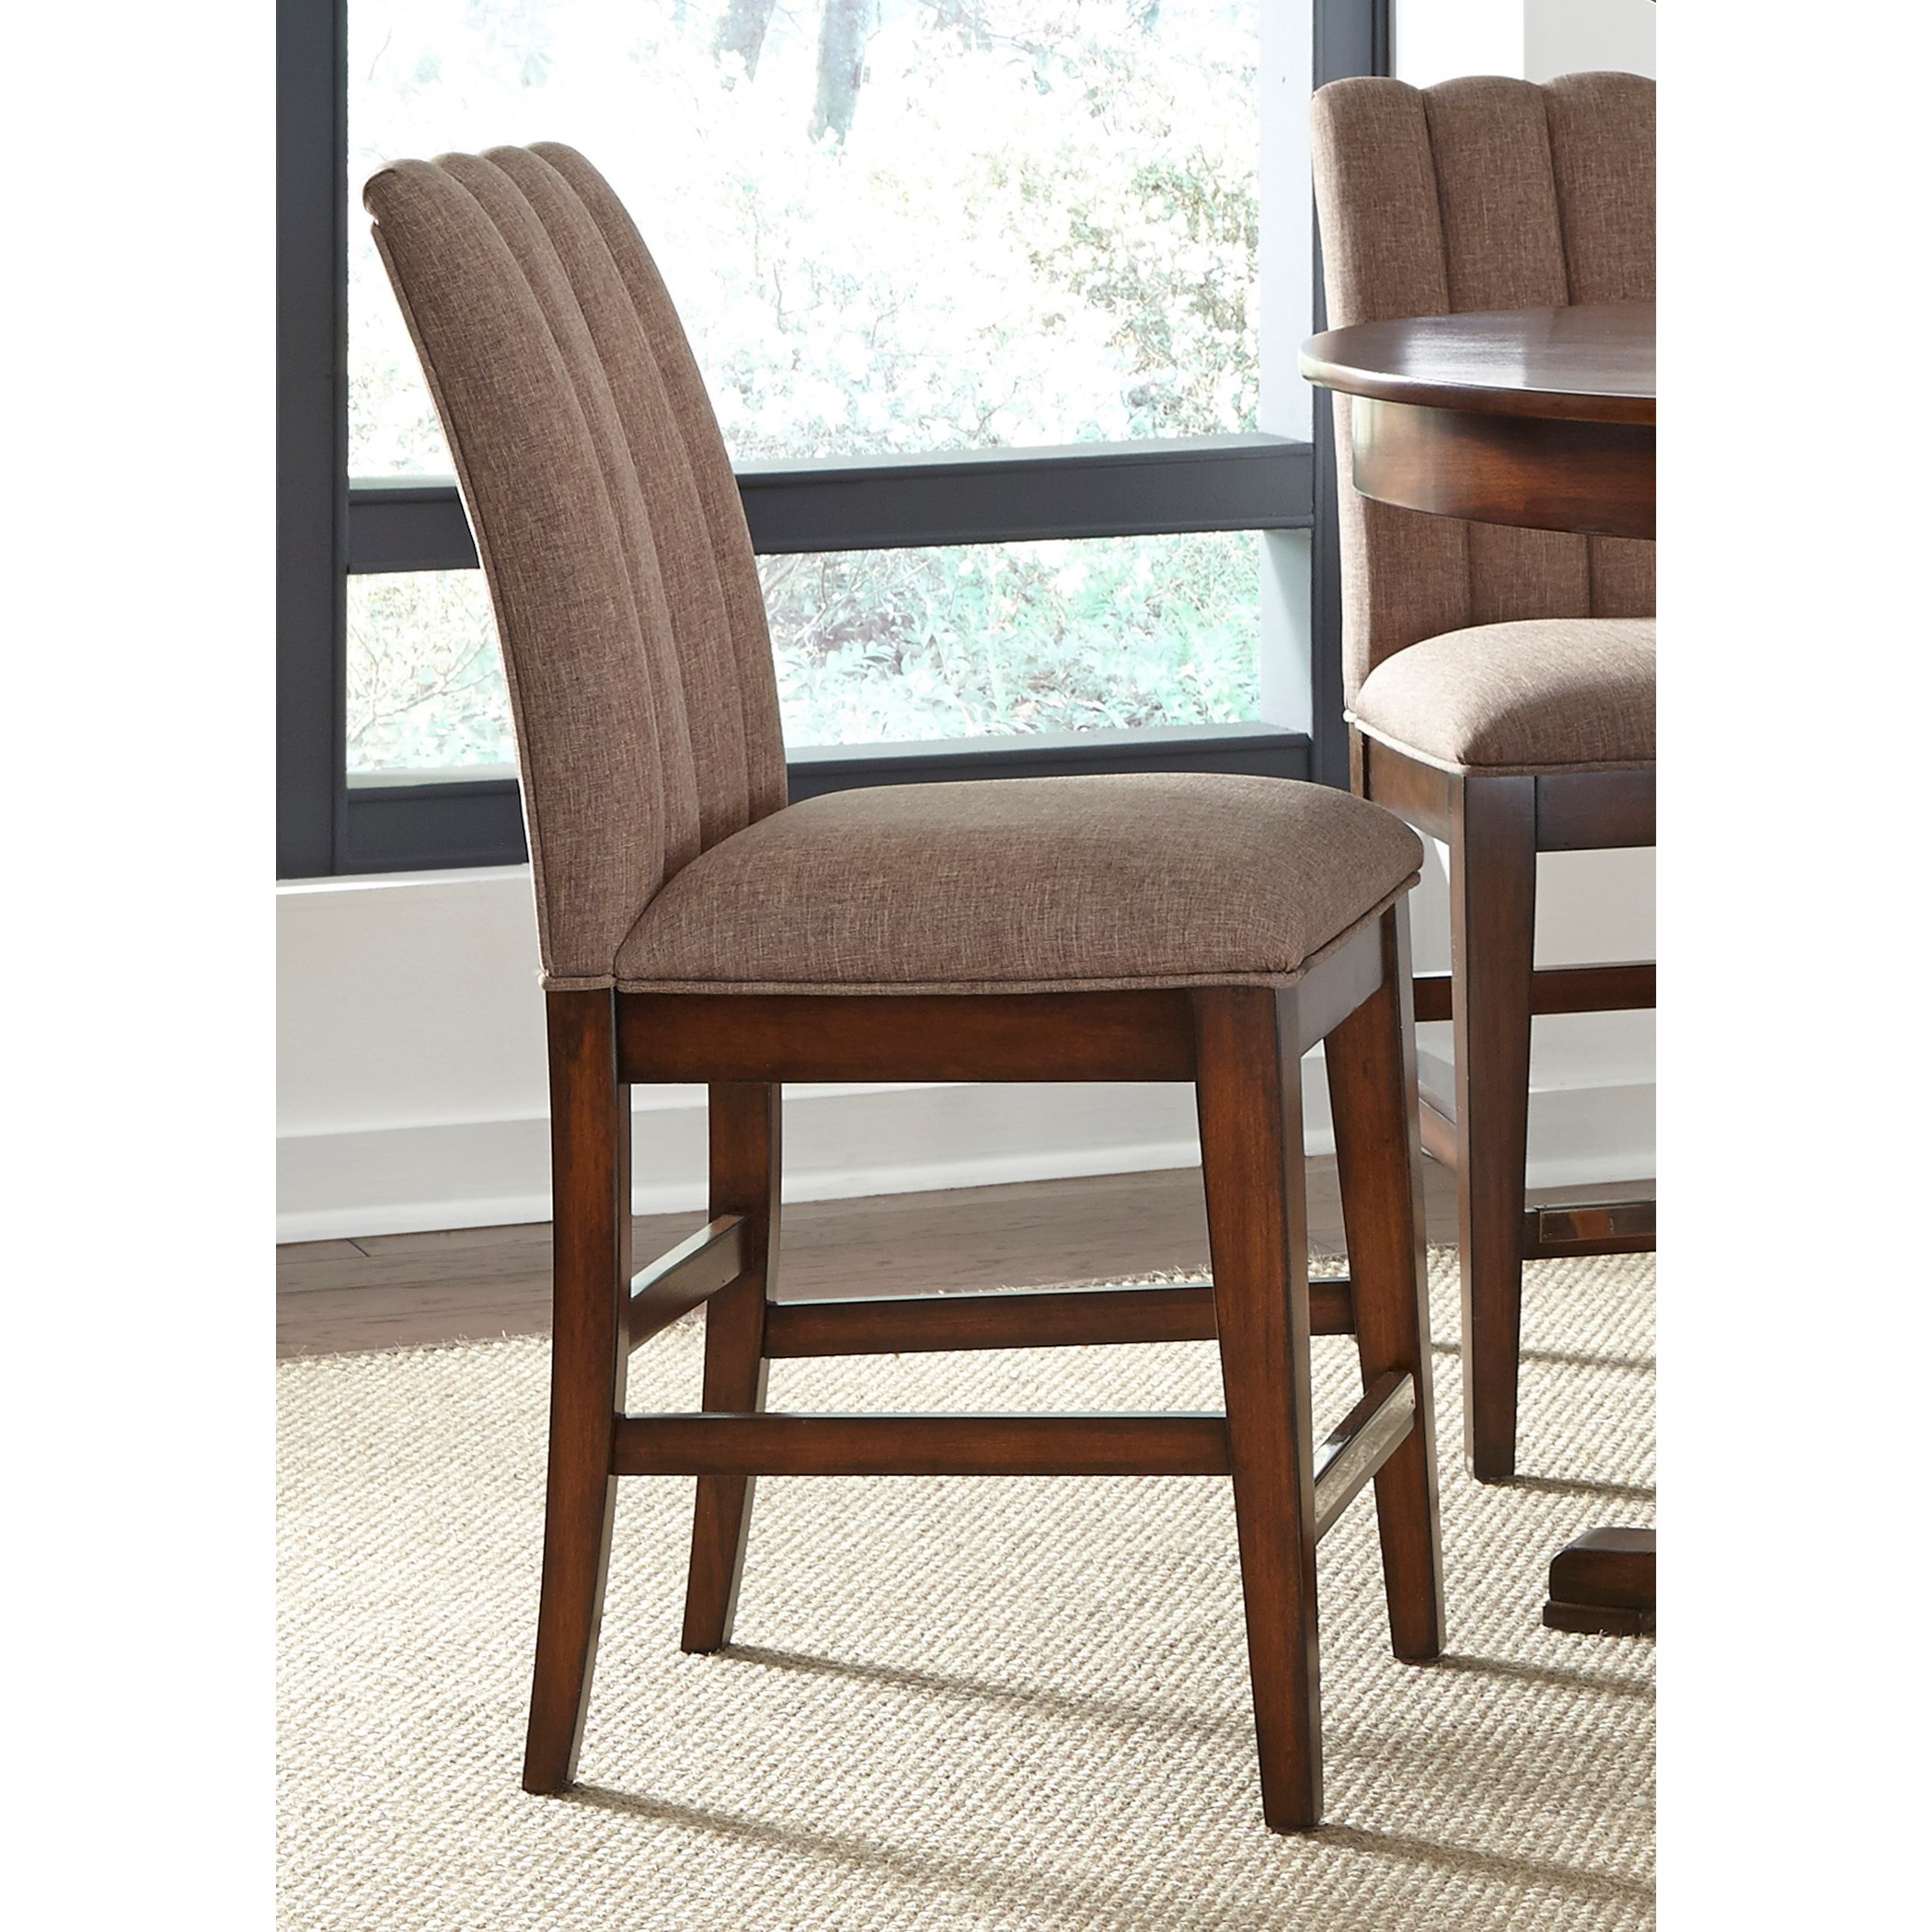 Liberty Furniture Mirage Dining Upholstered Counter Chair - Item Number: 234-B650124